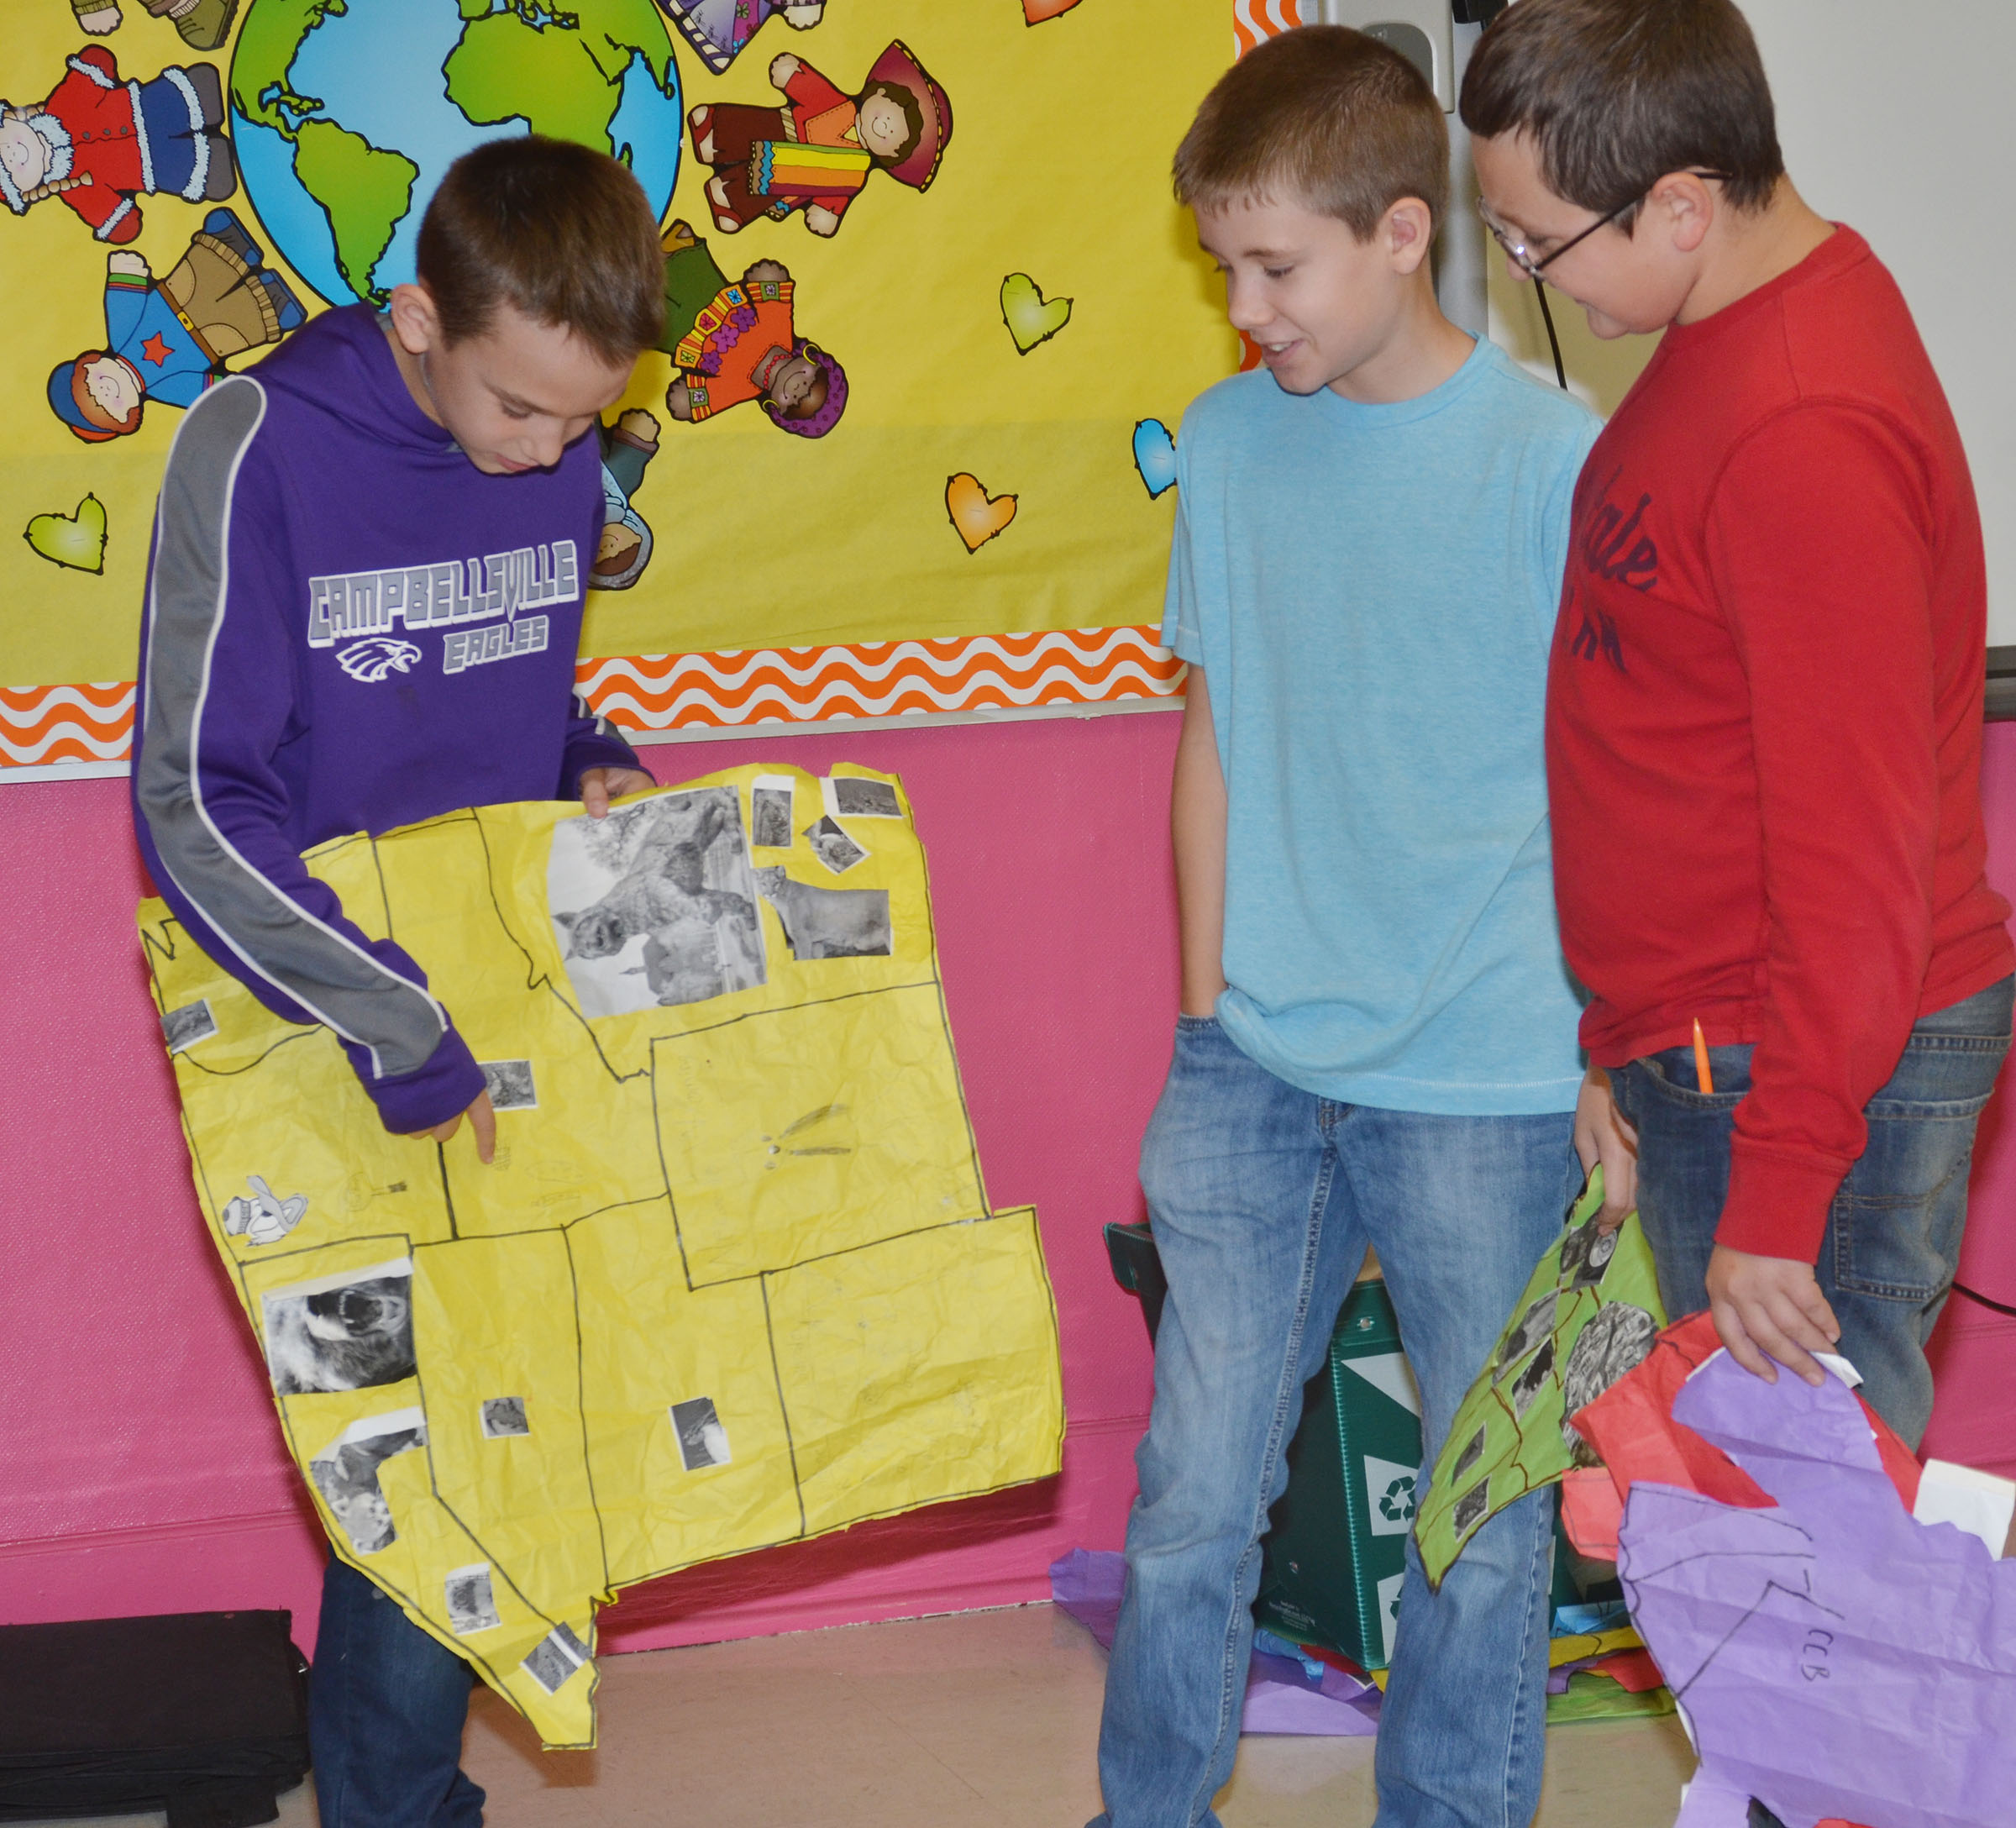 CMS sixth-graders, from left, Camren Vicari, Blake Tungate and Cameron Mahan discuss their map.